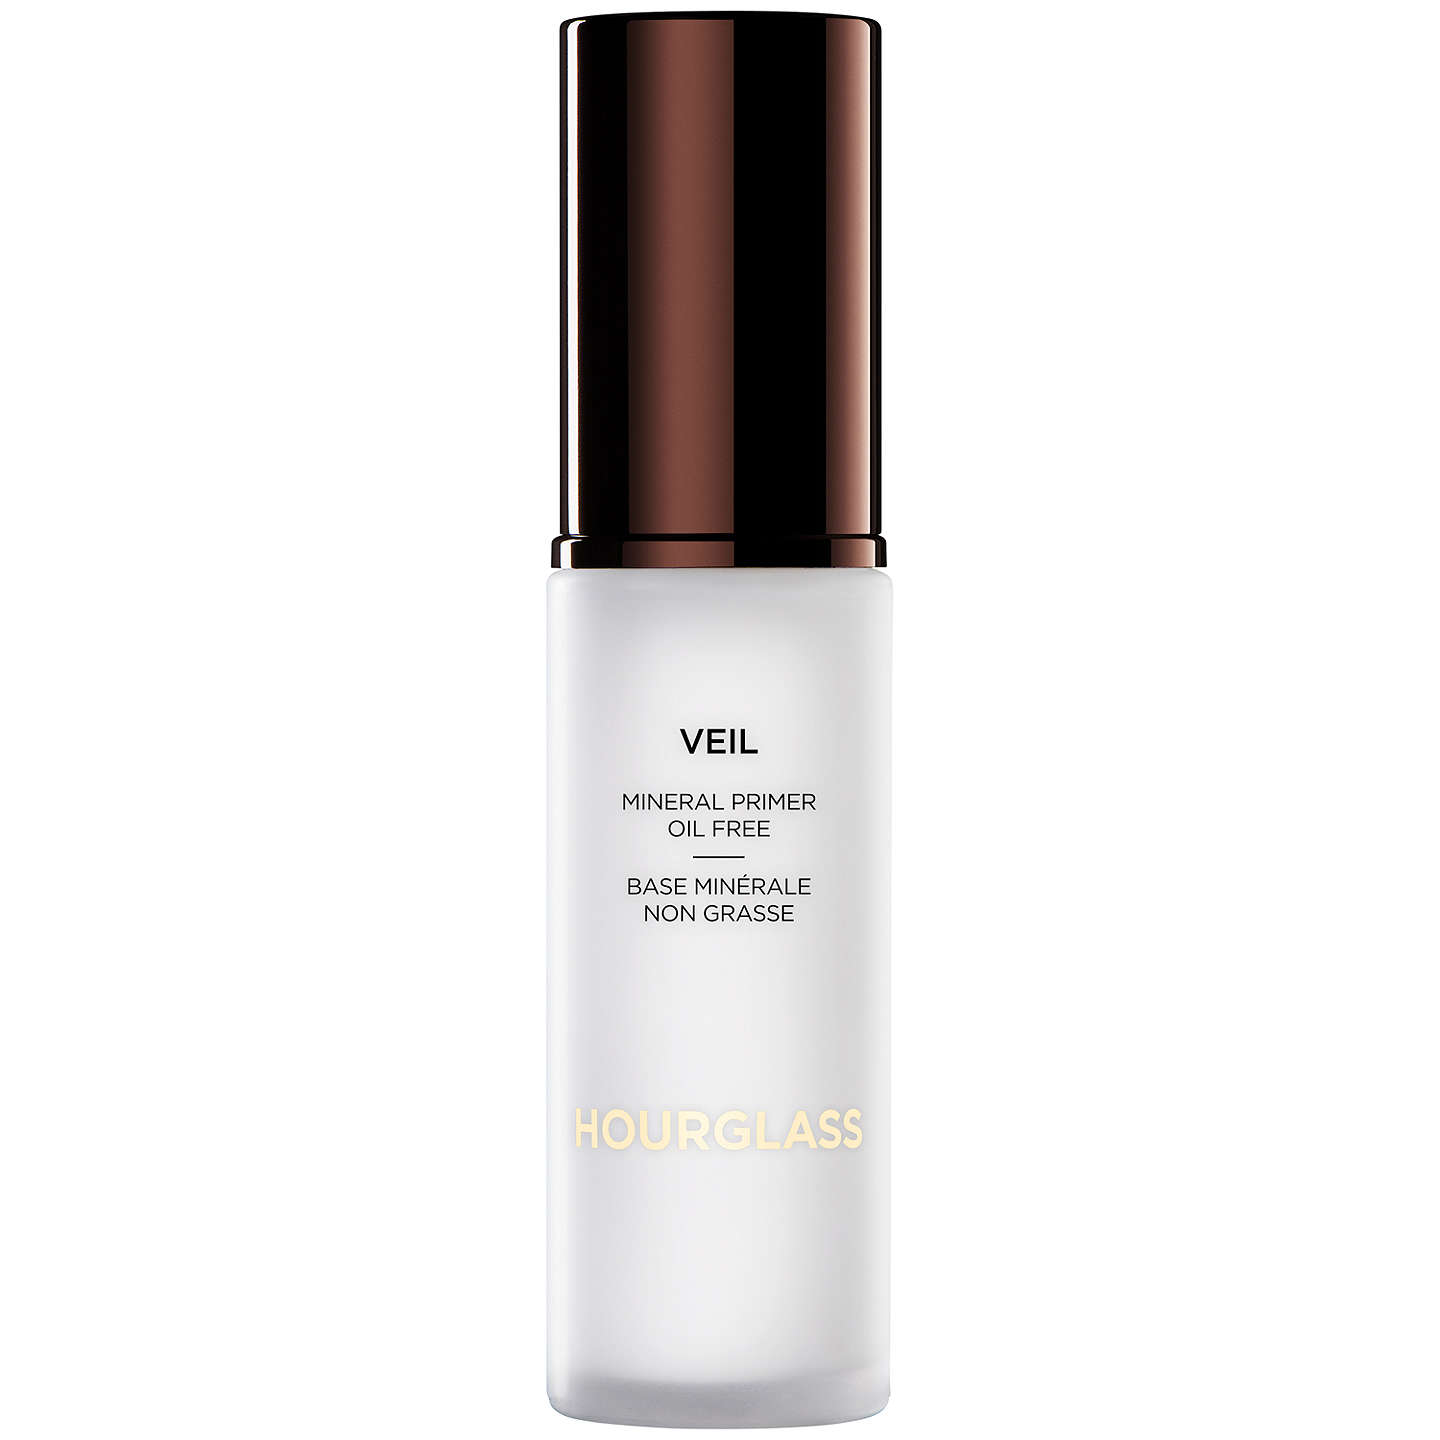 BuyHourglass Veil Mineral Primer, 30ml Online at johnlewis.com